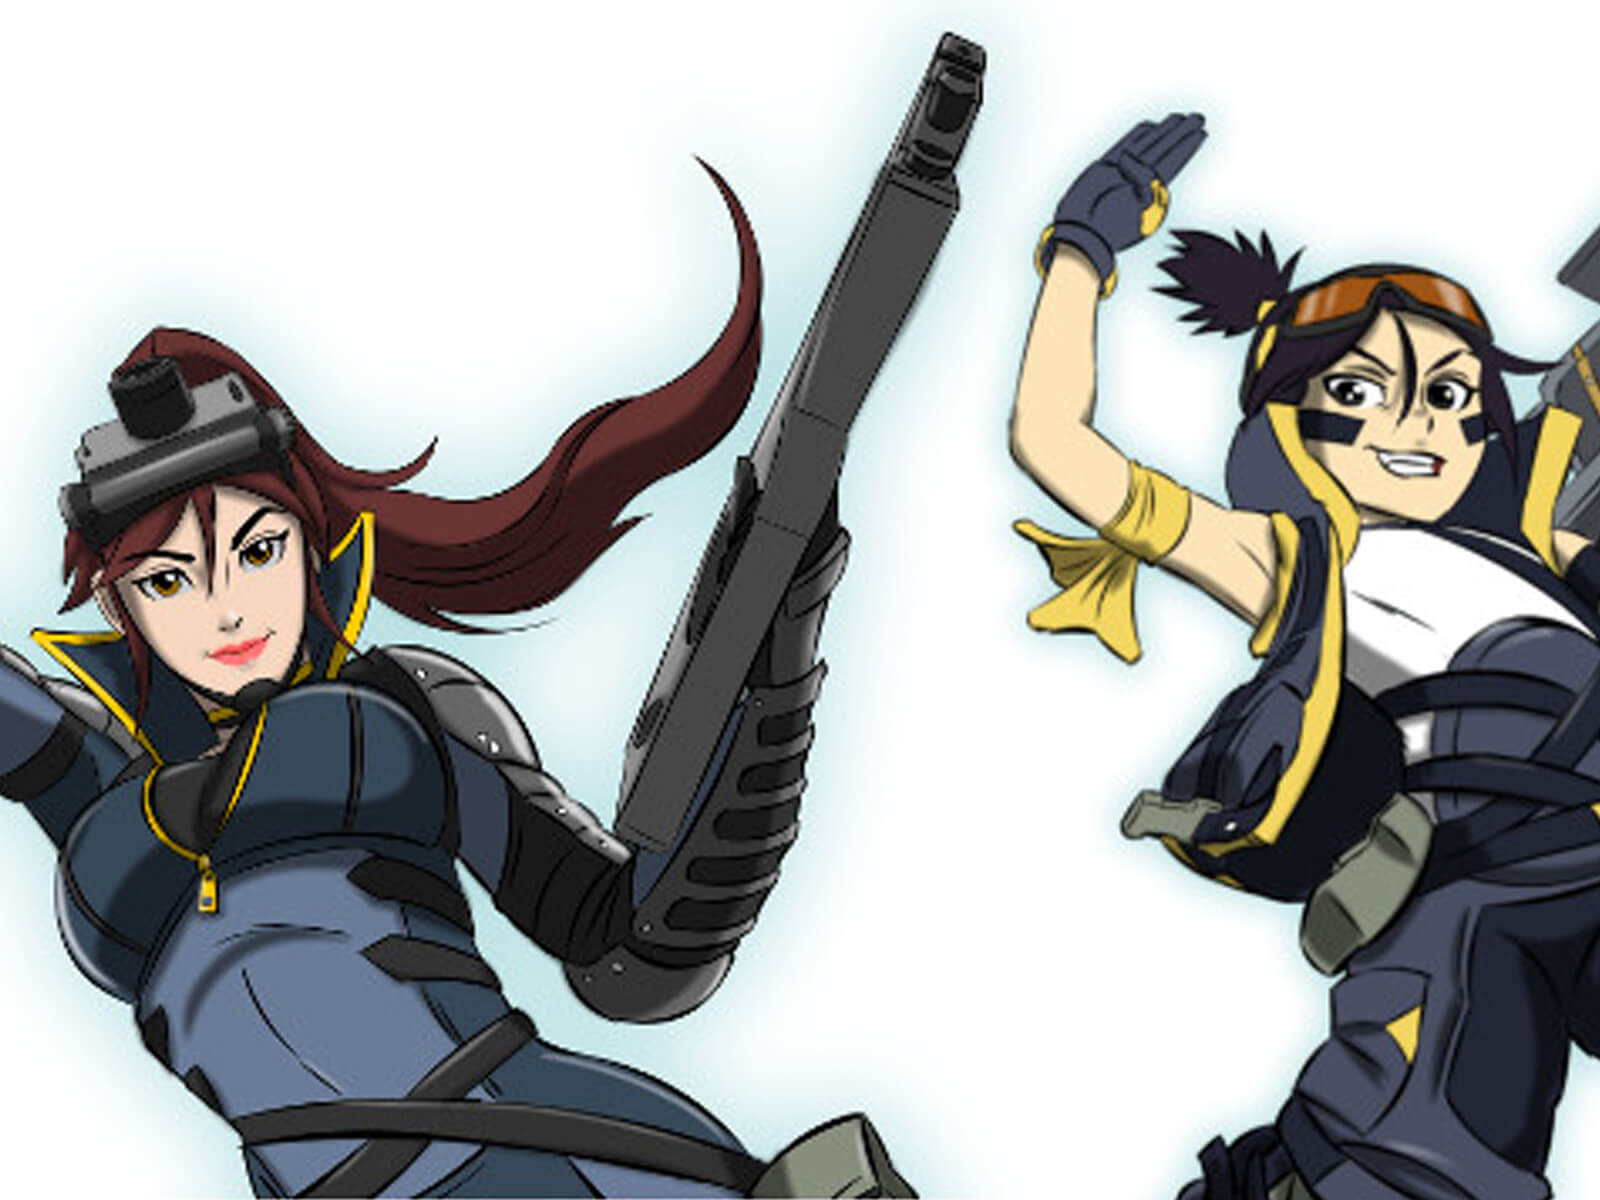 Two anime-style women are posed armed with guns and other weaponry